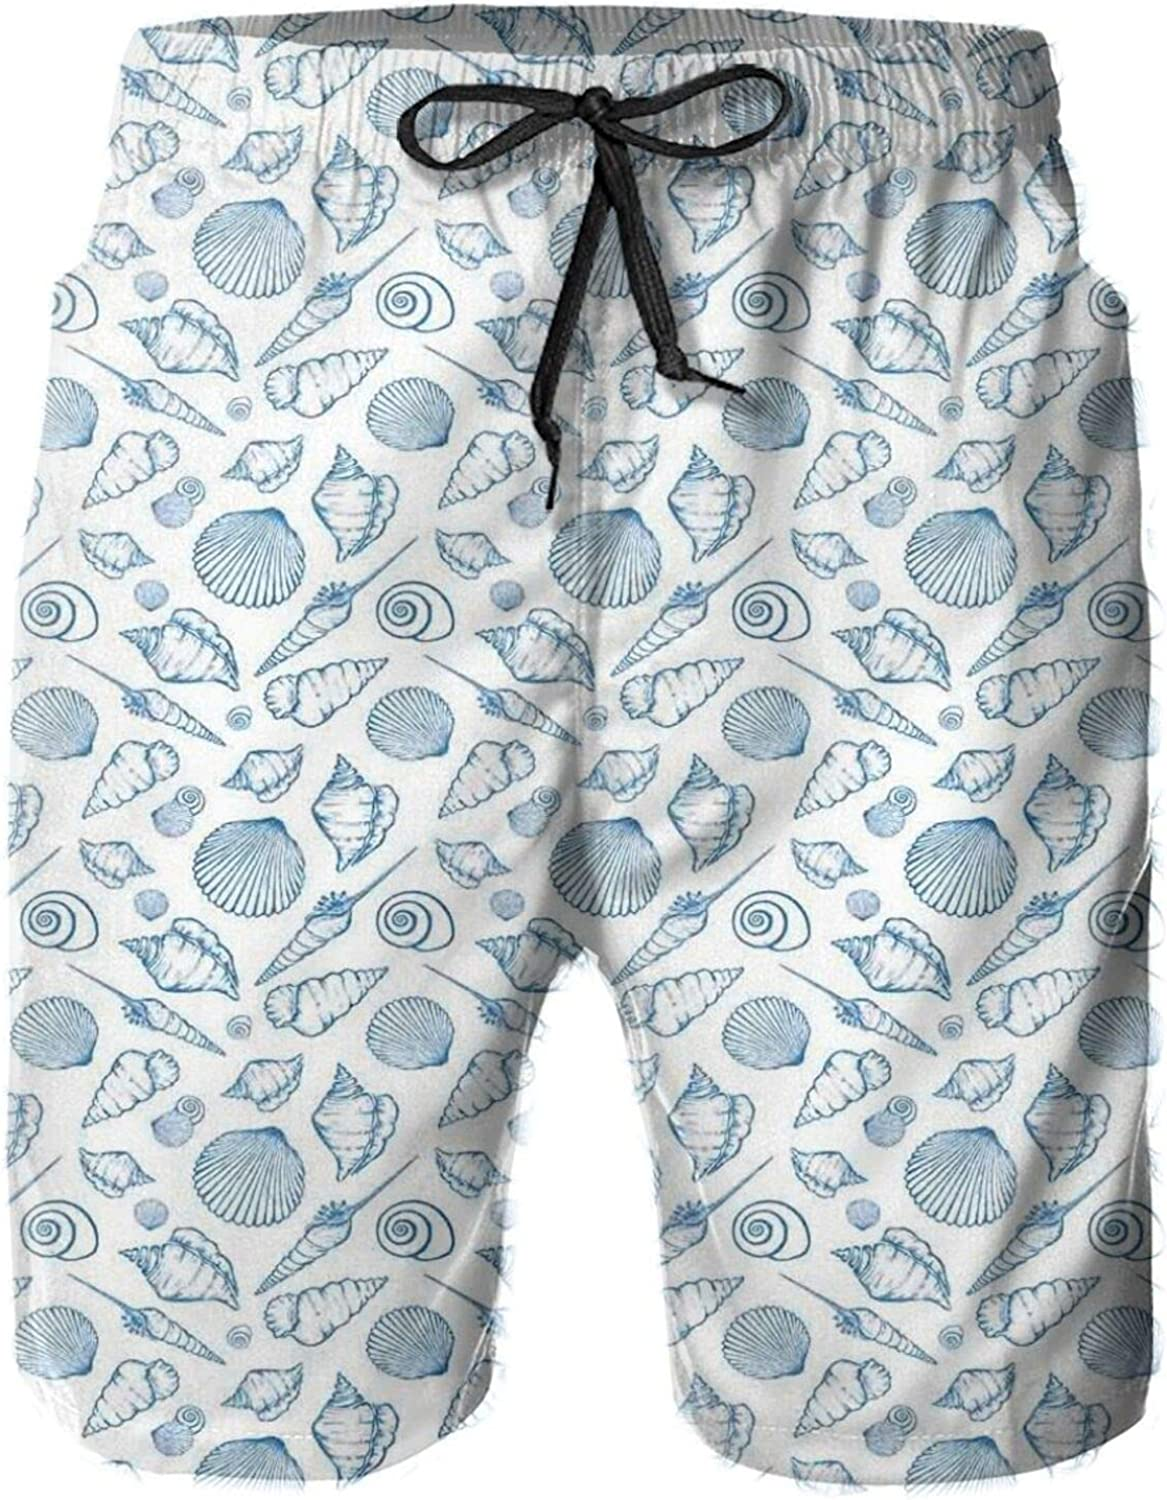 Under The Sea Concept with Seashells in Hand Drawn Style Maritime Shore Printed Beach Shorts for Men Swim Trucks Mesh Lining,XXL